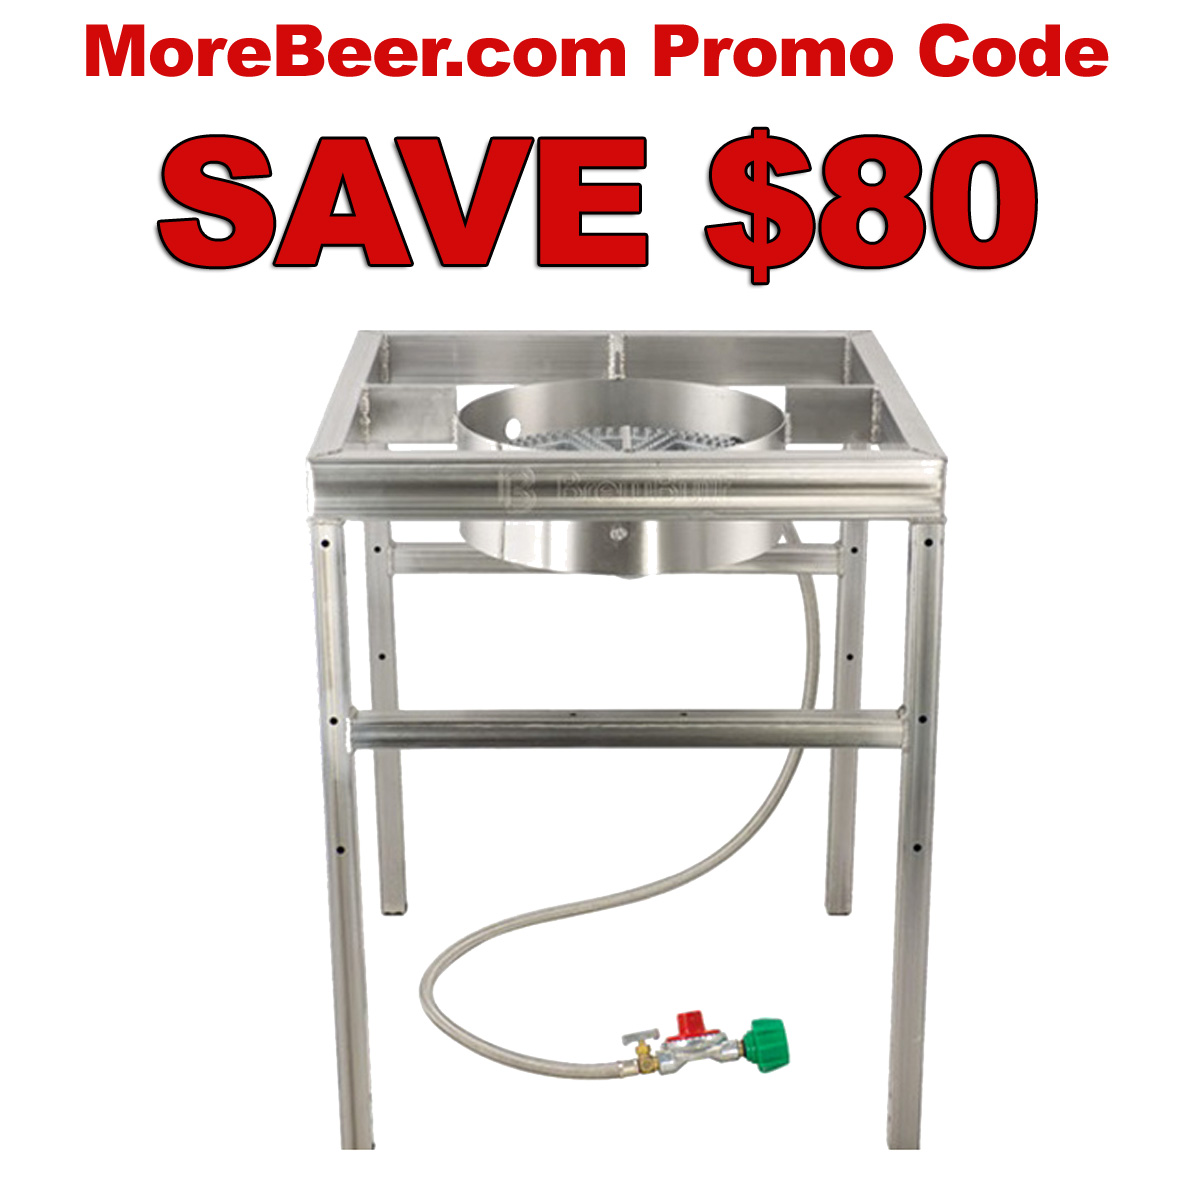 Save $80 On A More Beer After Burner Brewing Burner and Stand With This MoreBeer.com Promo Code Coupon Code